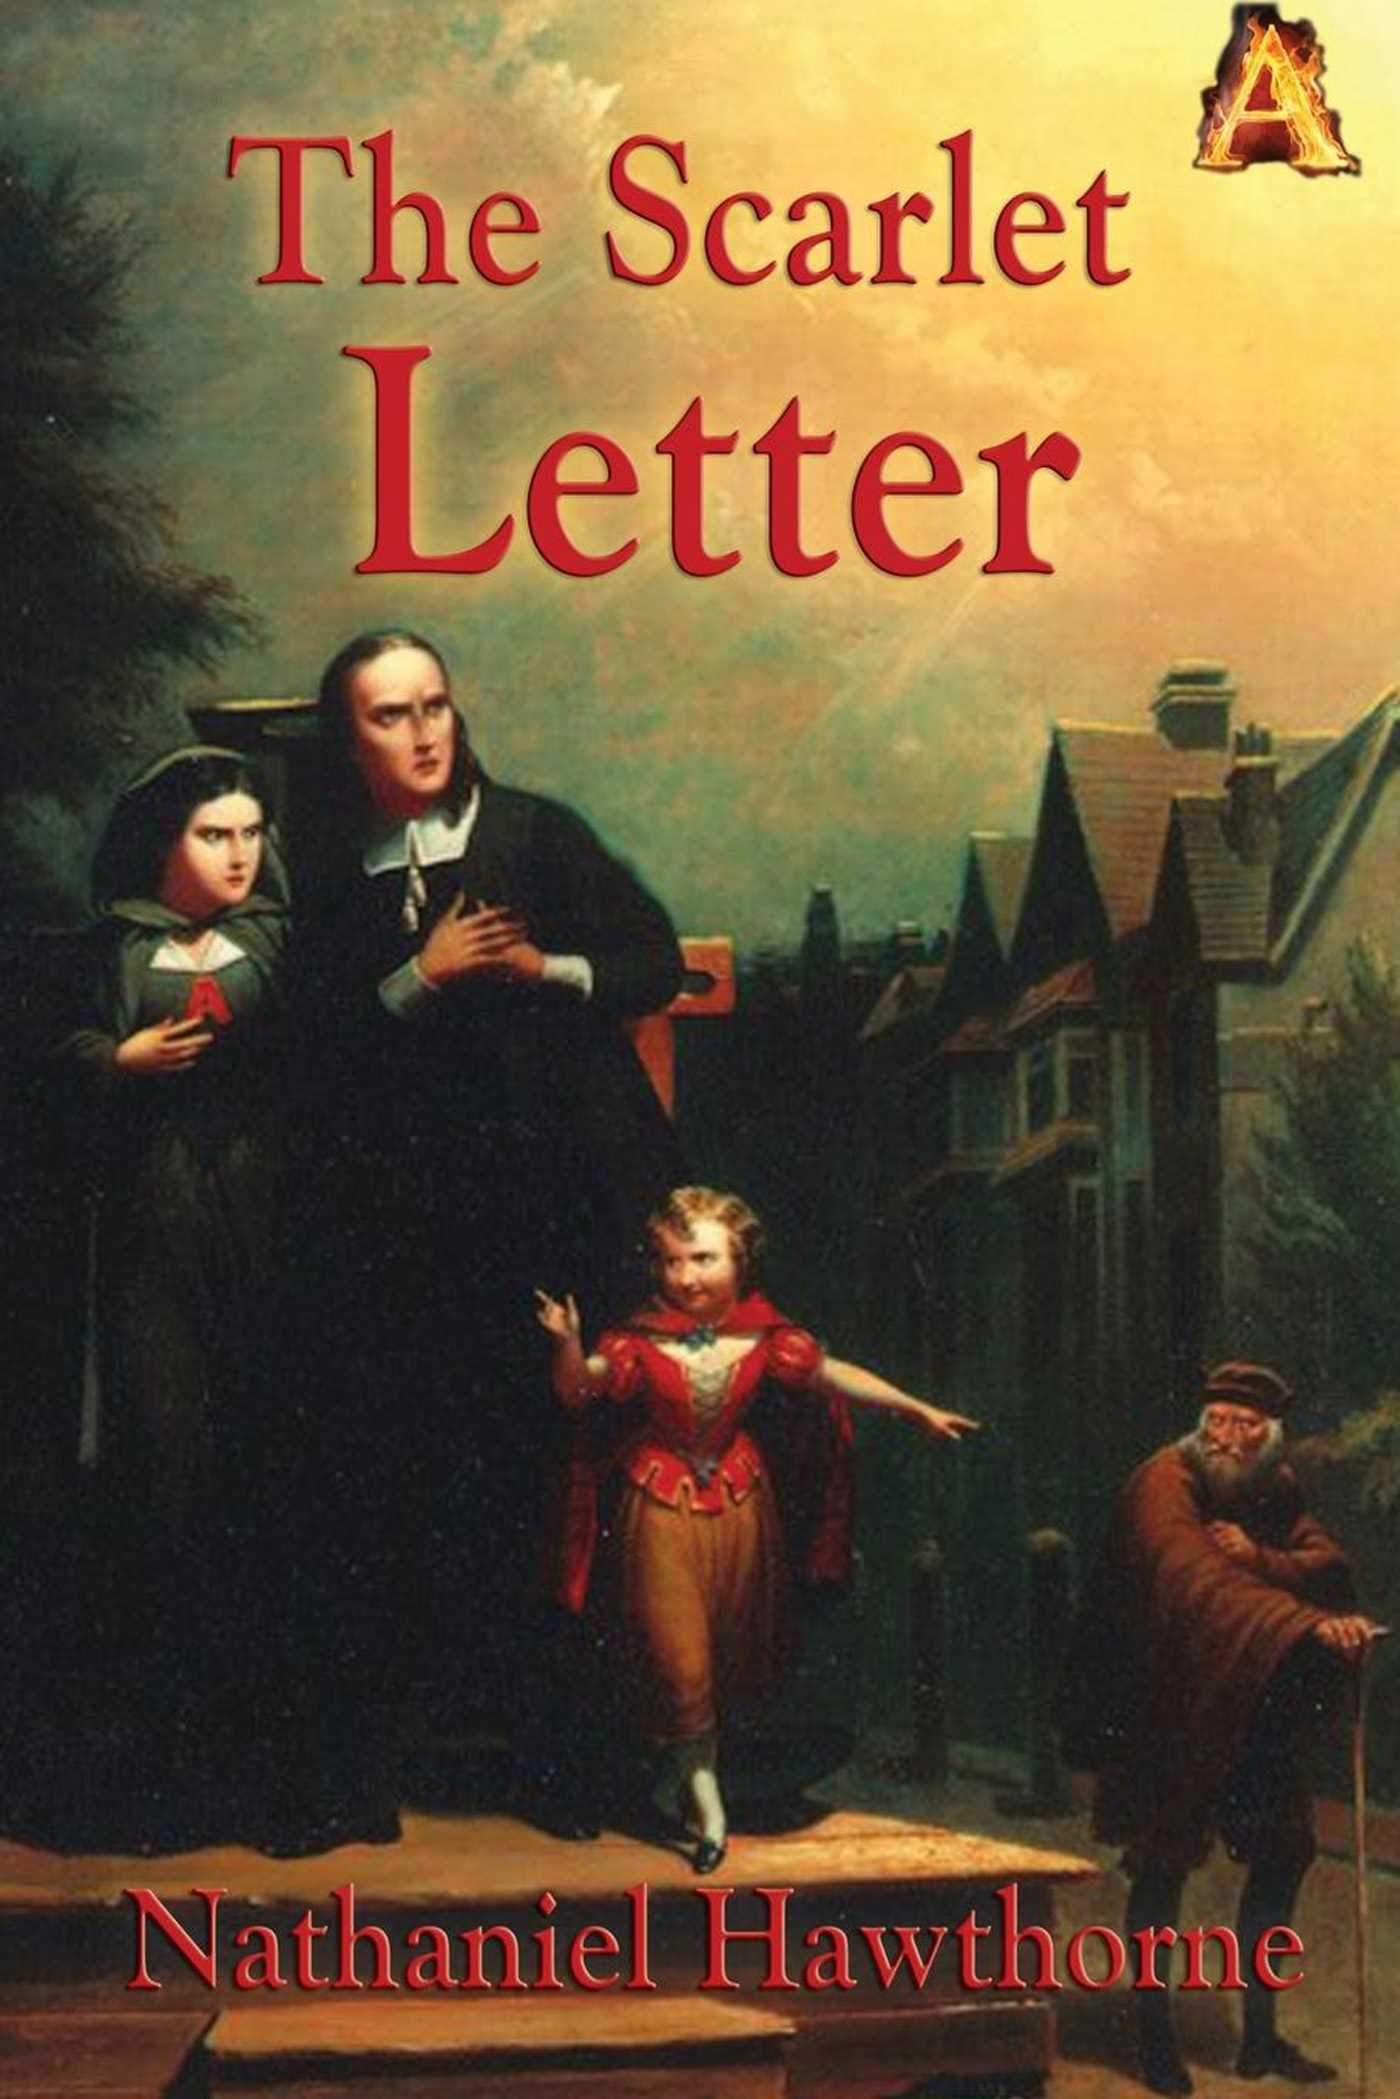 revenge in the scarlet letter by nathaniel hawthorne Complete summary of nathaniel hawthorne's the scarlet letter enotes plot summaries cover all the significant action of the scarlet letter.